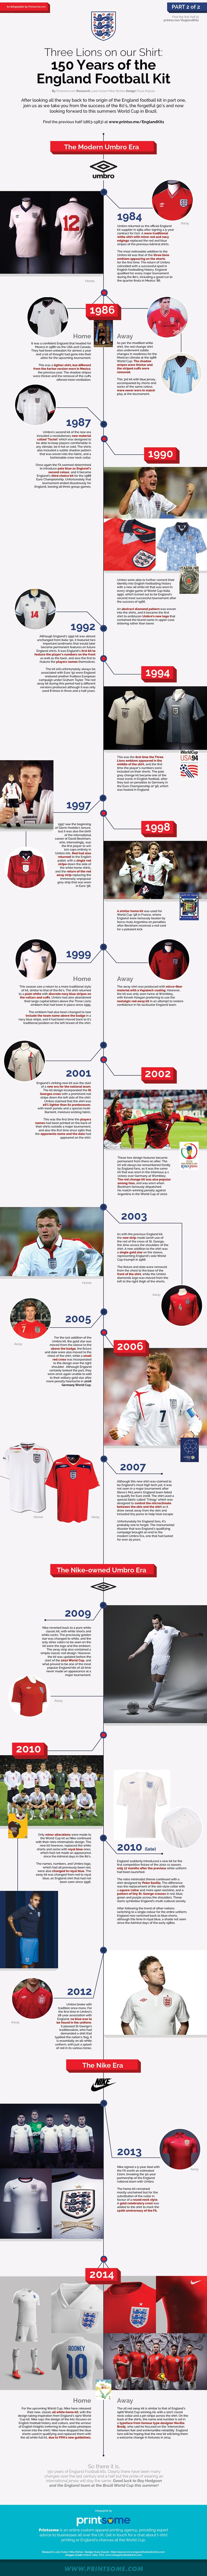 150 Years of the England Football Kit - Part 2